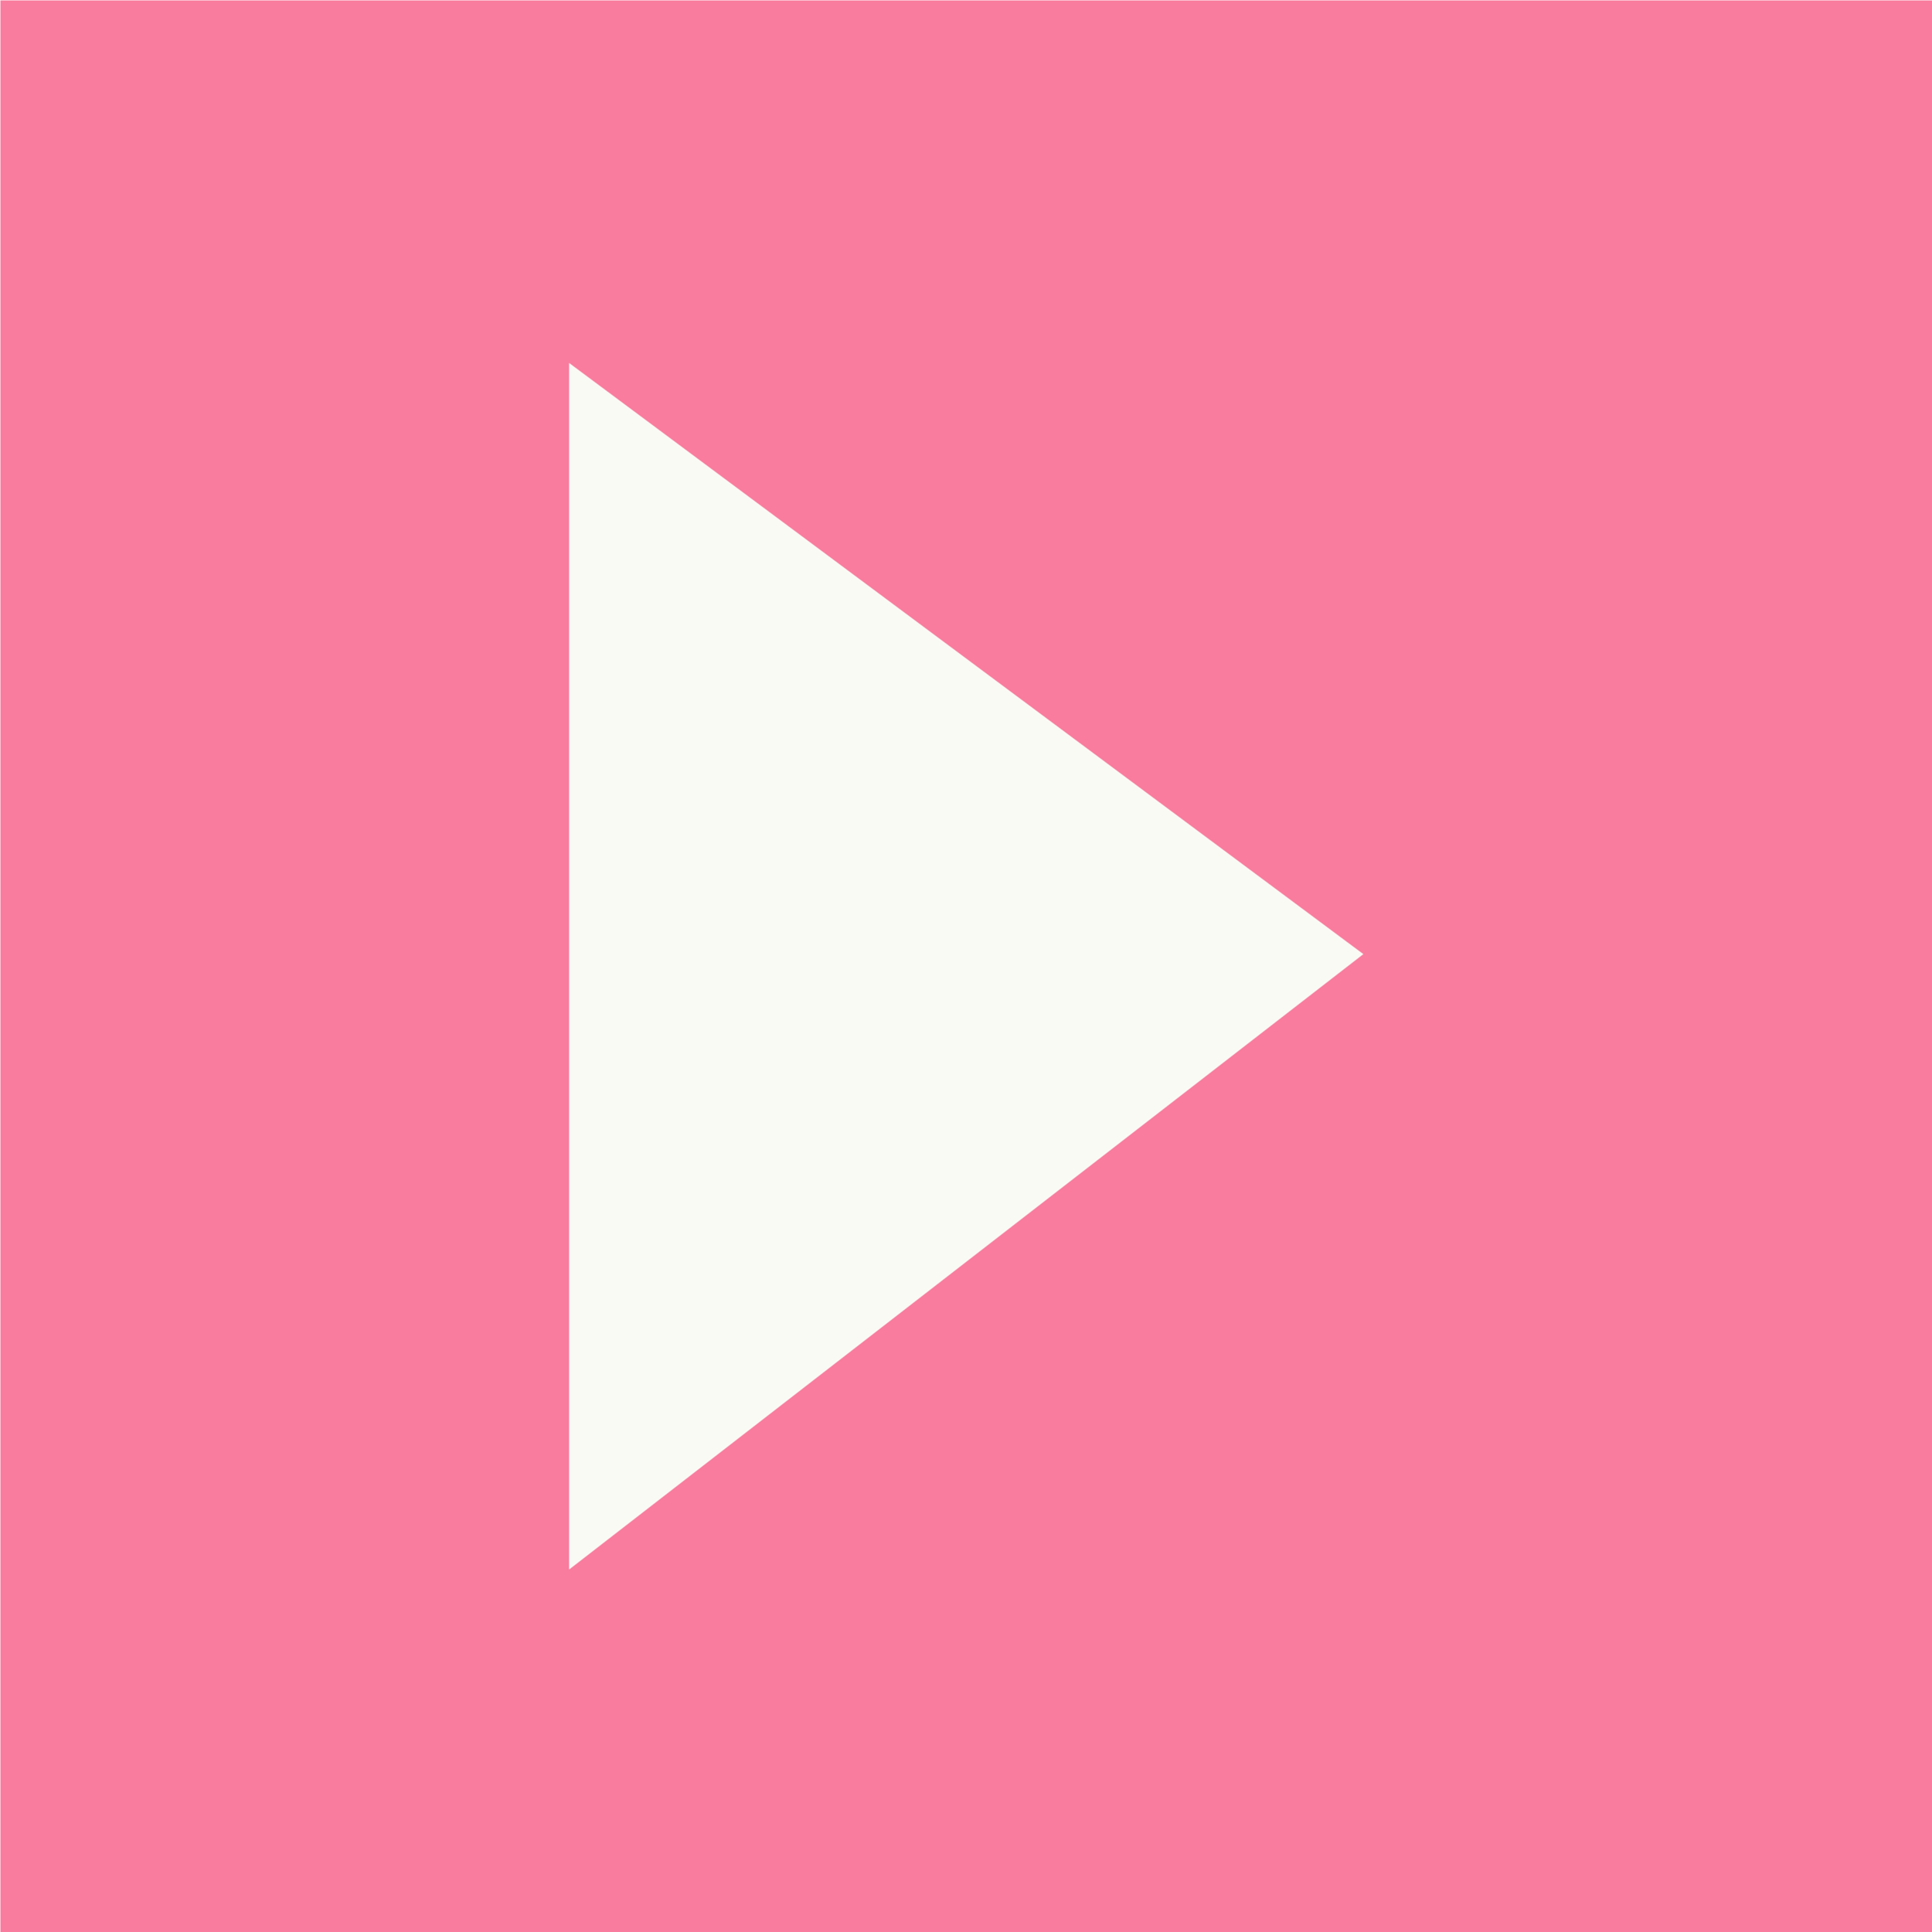 OTL_Square_icons_Pink-04.png